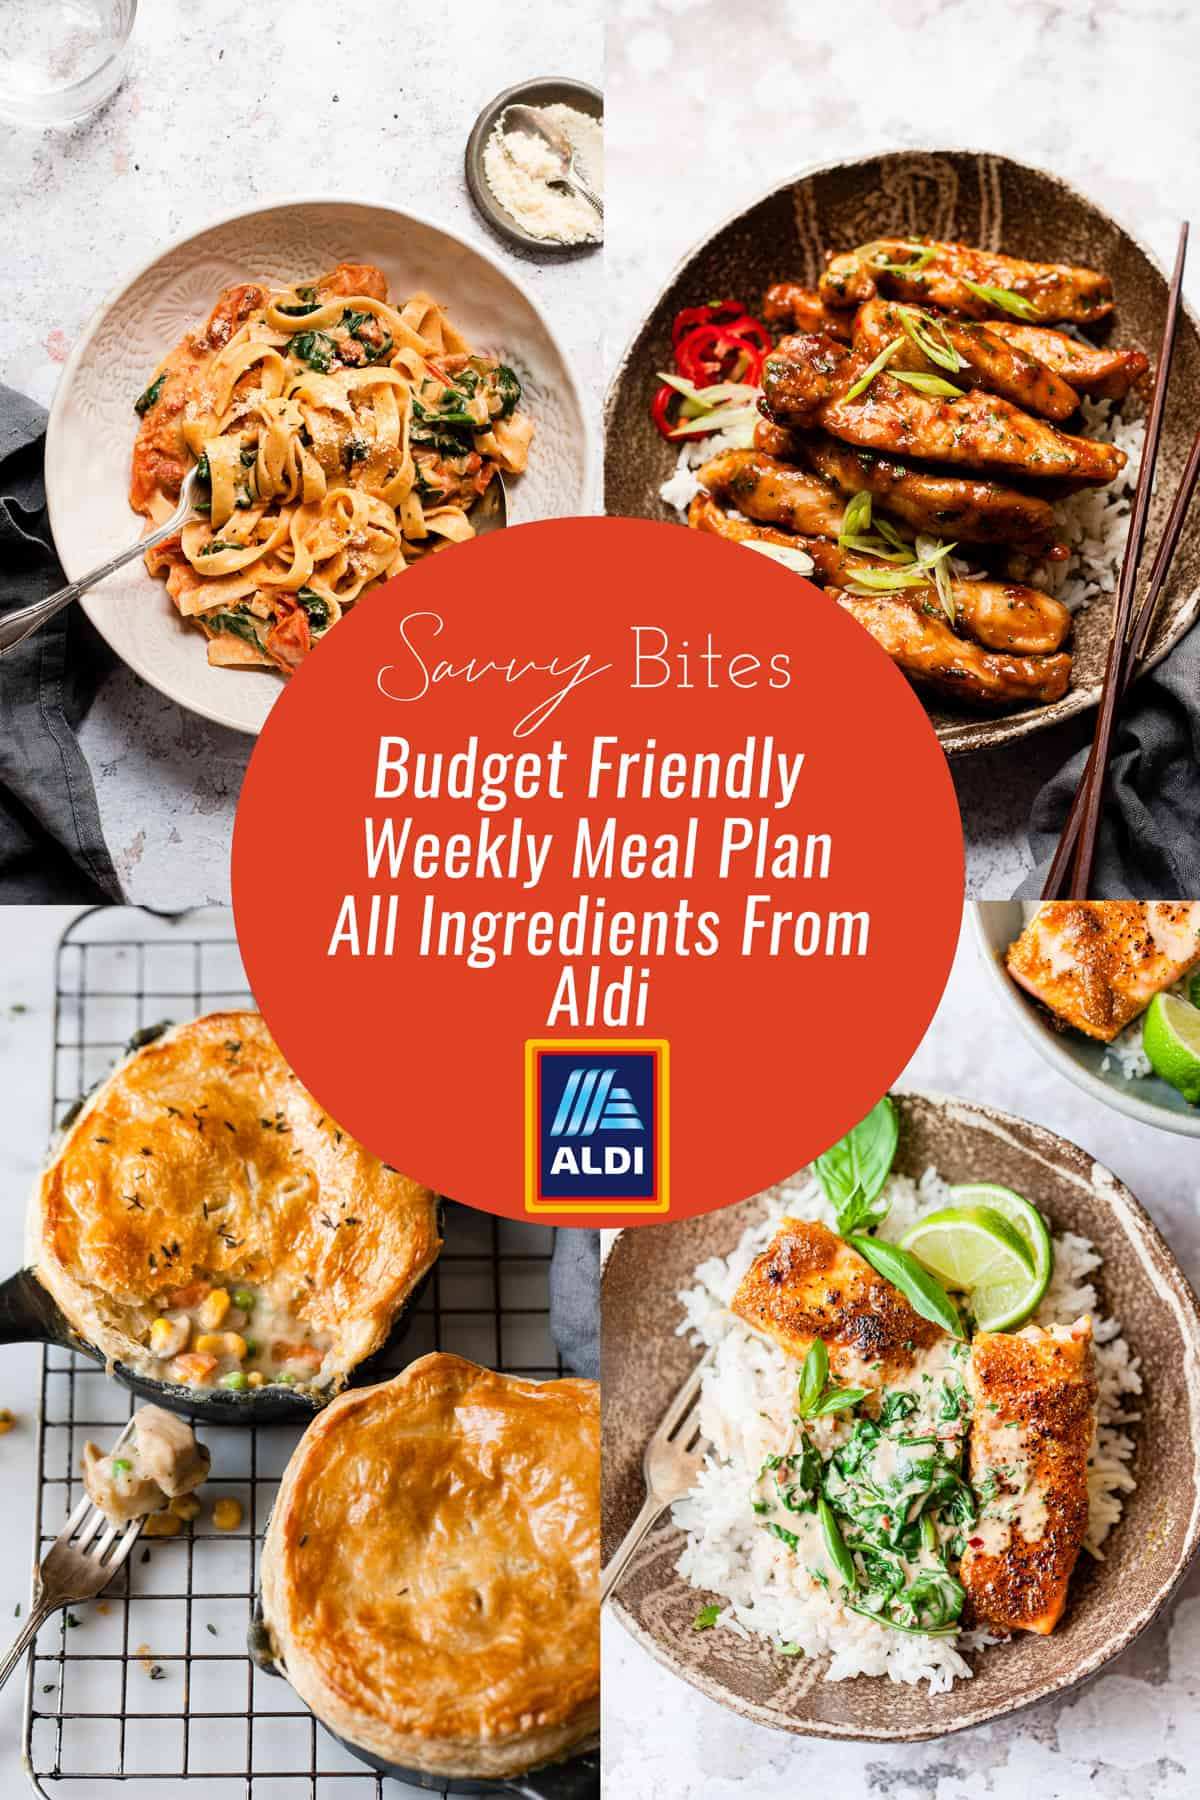 Aldi recipes in a photo collage for the meal plan